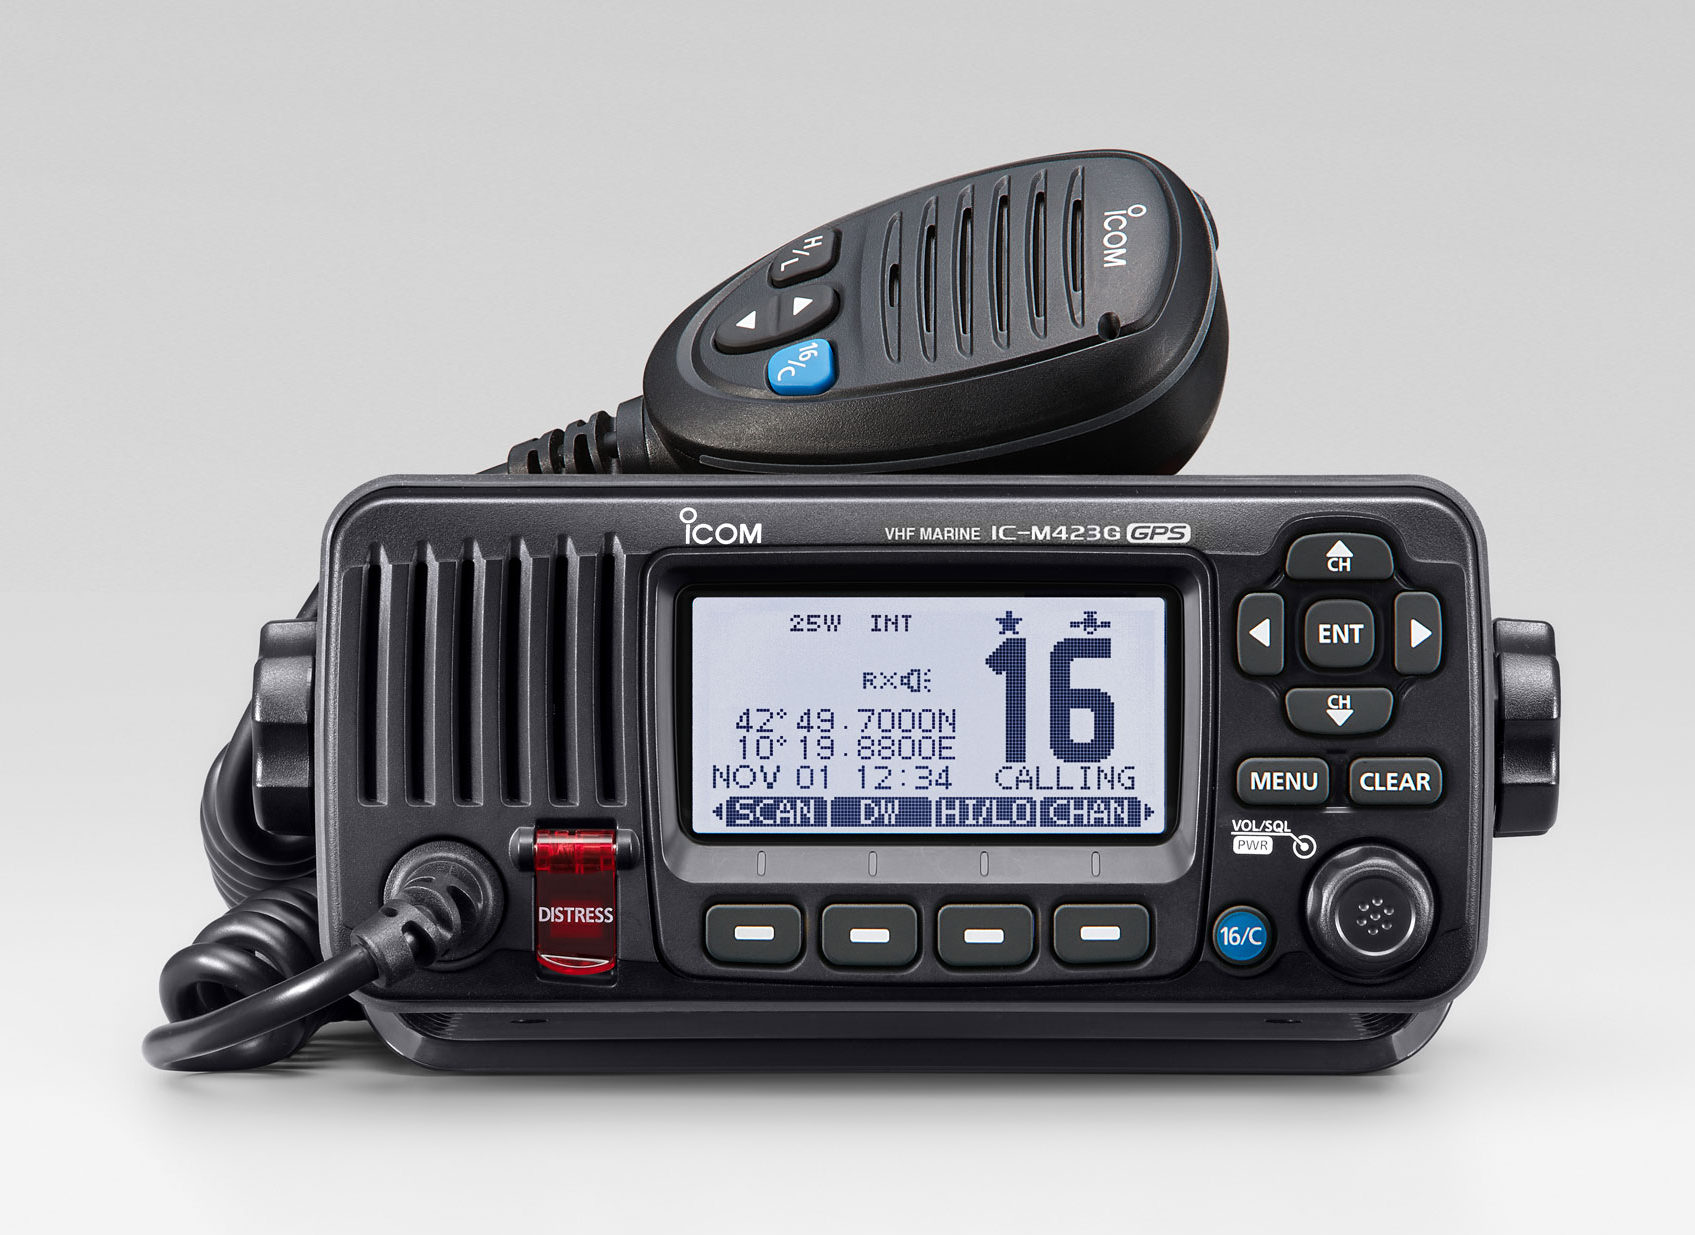 Some LED lights can interfere with VHF radio transmissions.